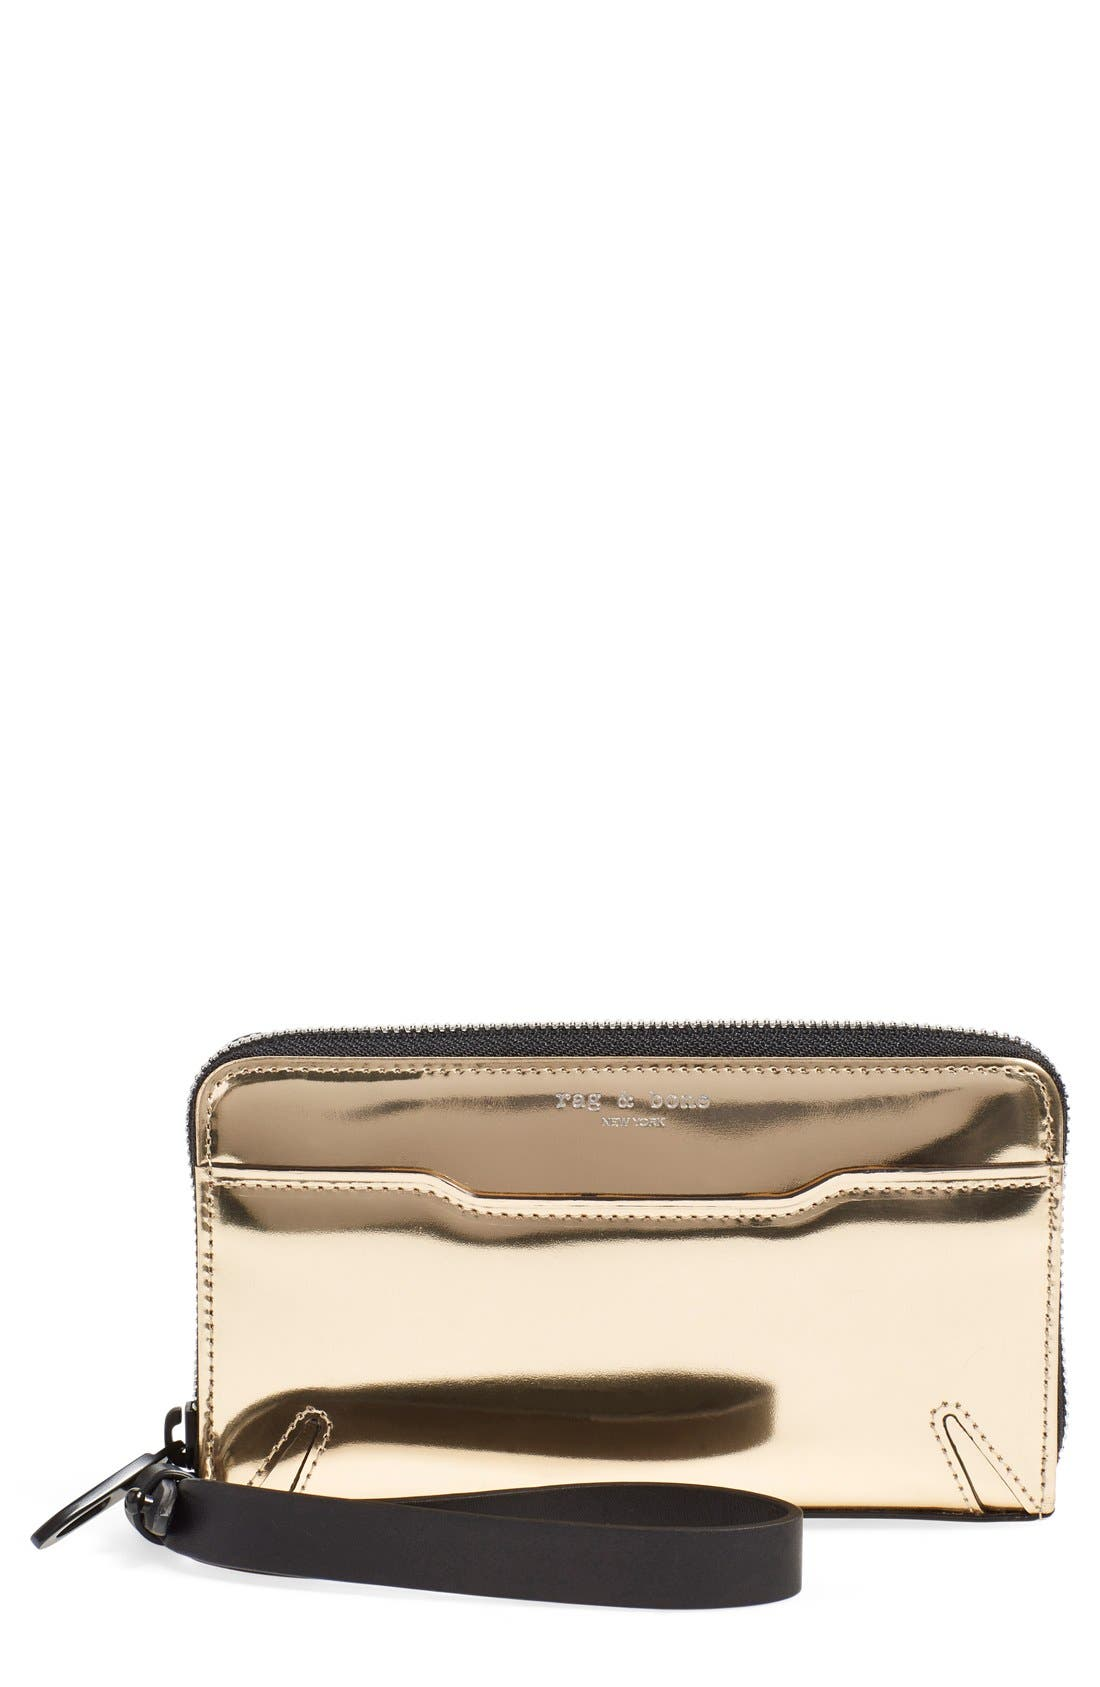 'Devon' Metallic Leather Zip Smartphone Wallet, Main, color, 710